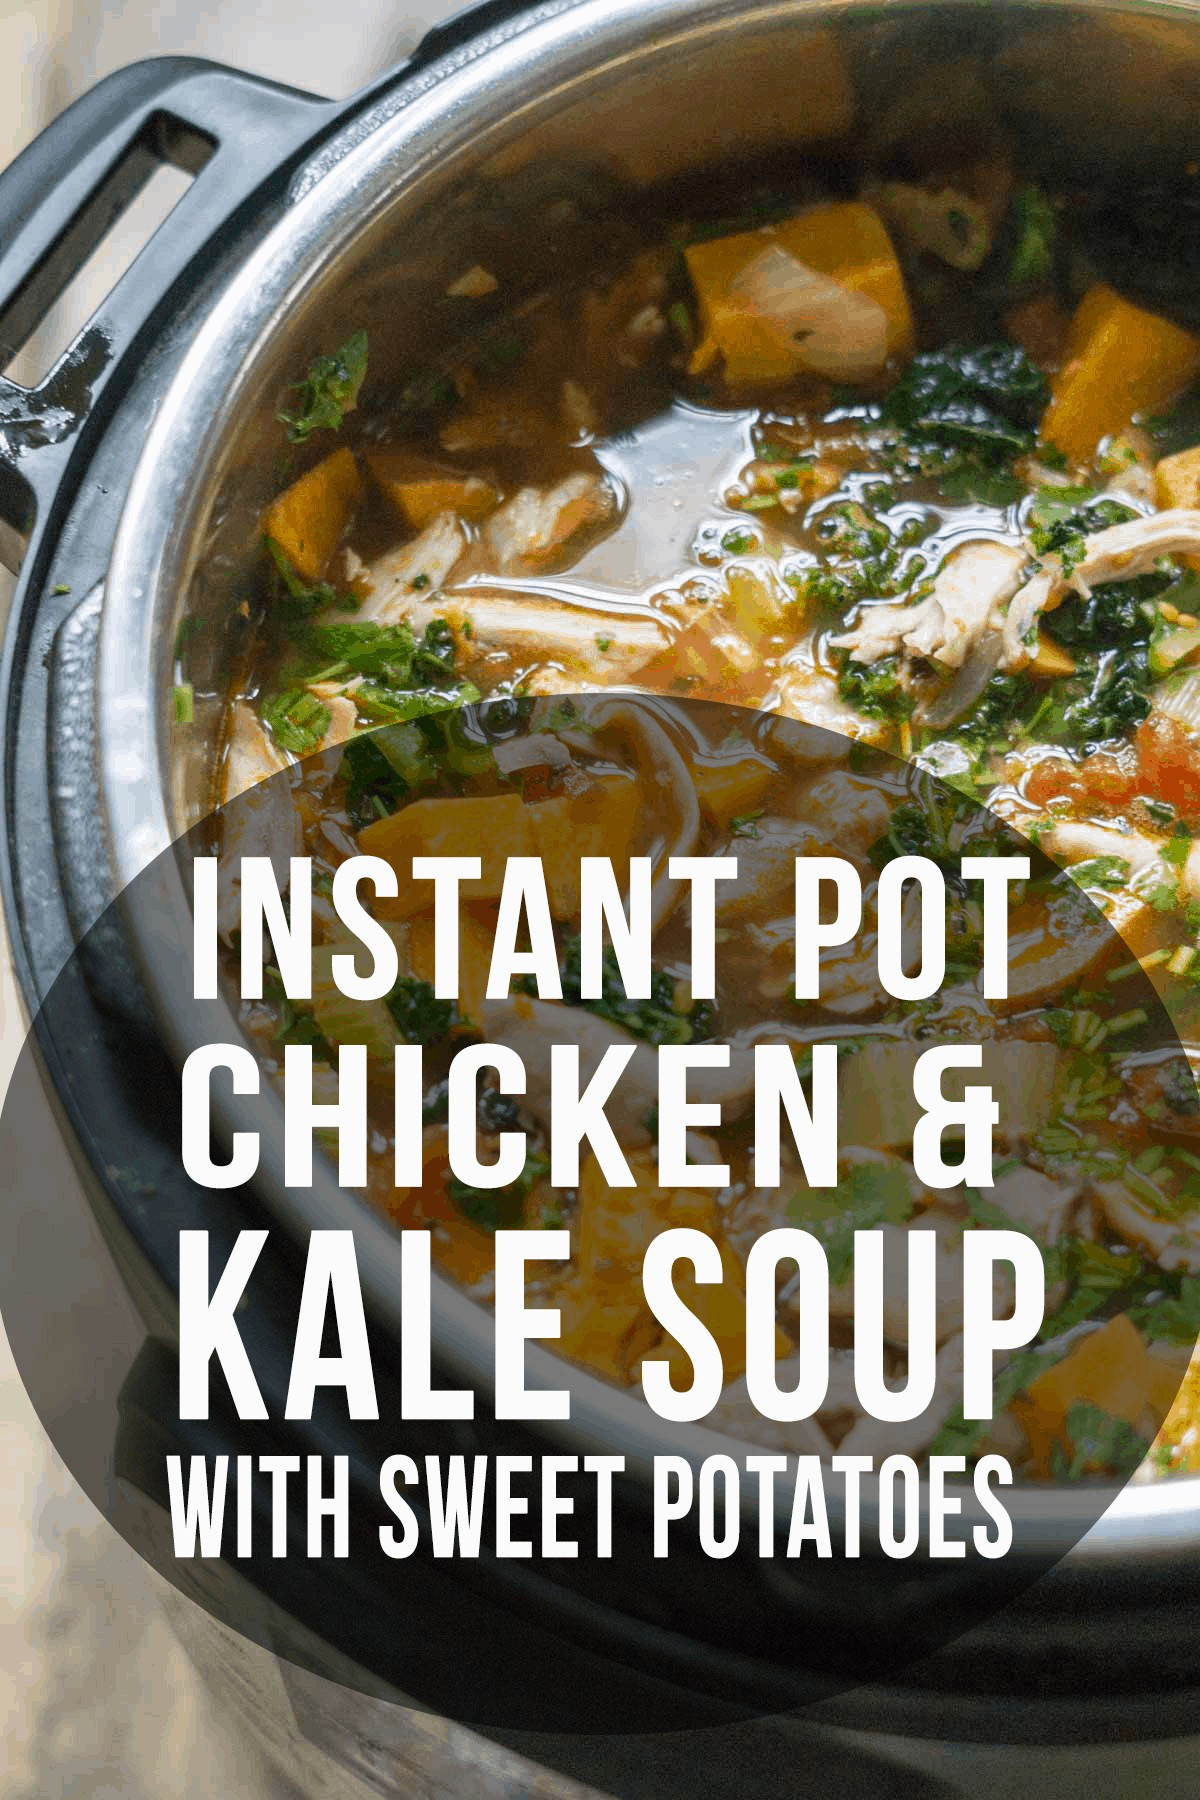 Sweet potato, kale, and chicken soup made in the Instant Pot #souprecipes #glutenfreesoup #leftoverturkey #kalerecipes #chickenrecipes #glutenfreerecipes #soup #healthysoup #healthyrecipes #instantpotsoup #instantpotrecipes #instantpot #dairyfree